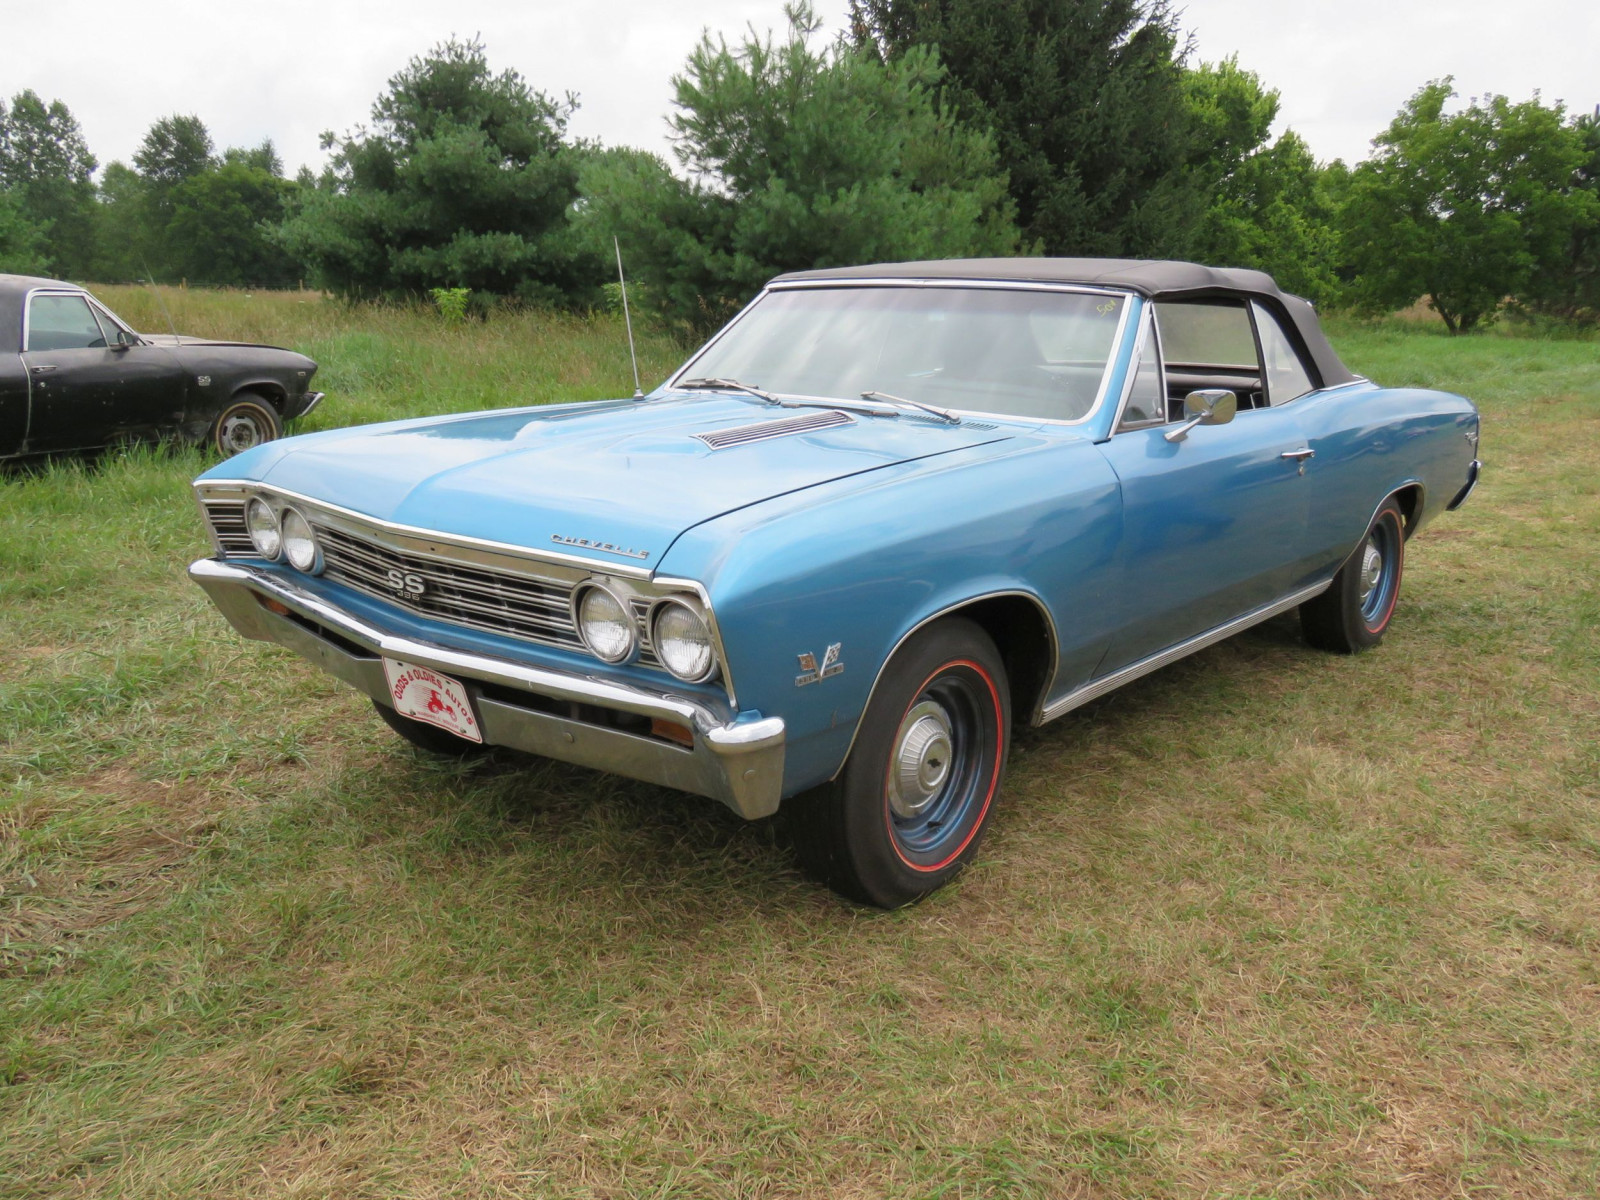 1967 Chevrolet Chevelle SS Convertible - Image 1